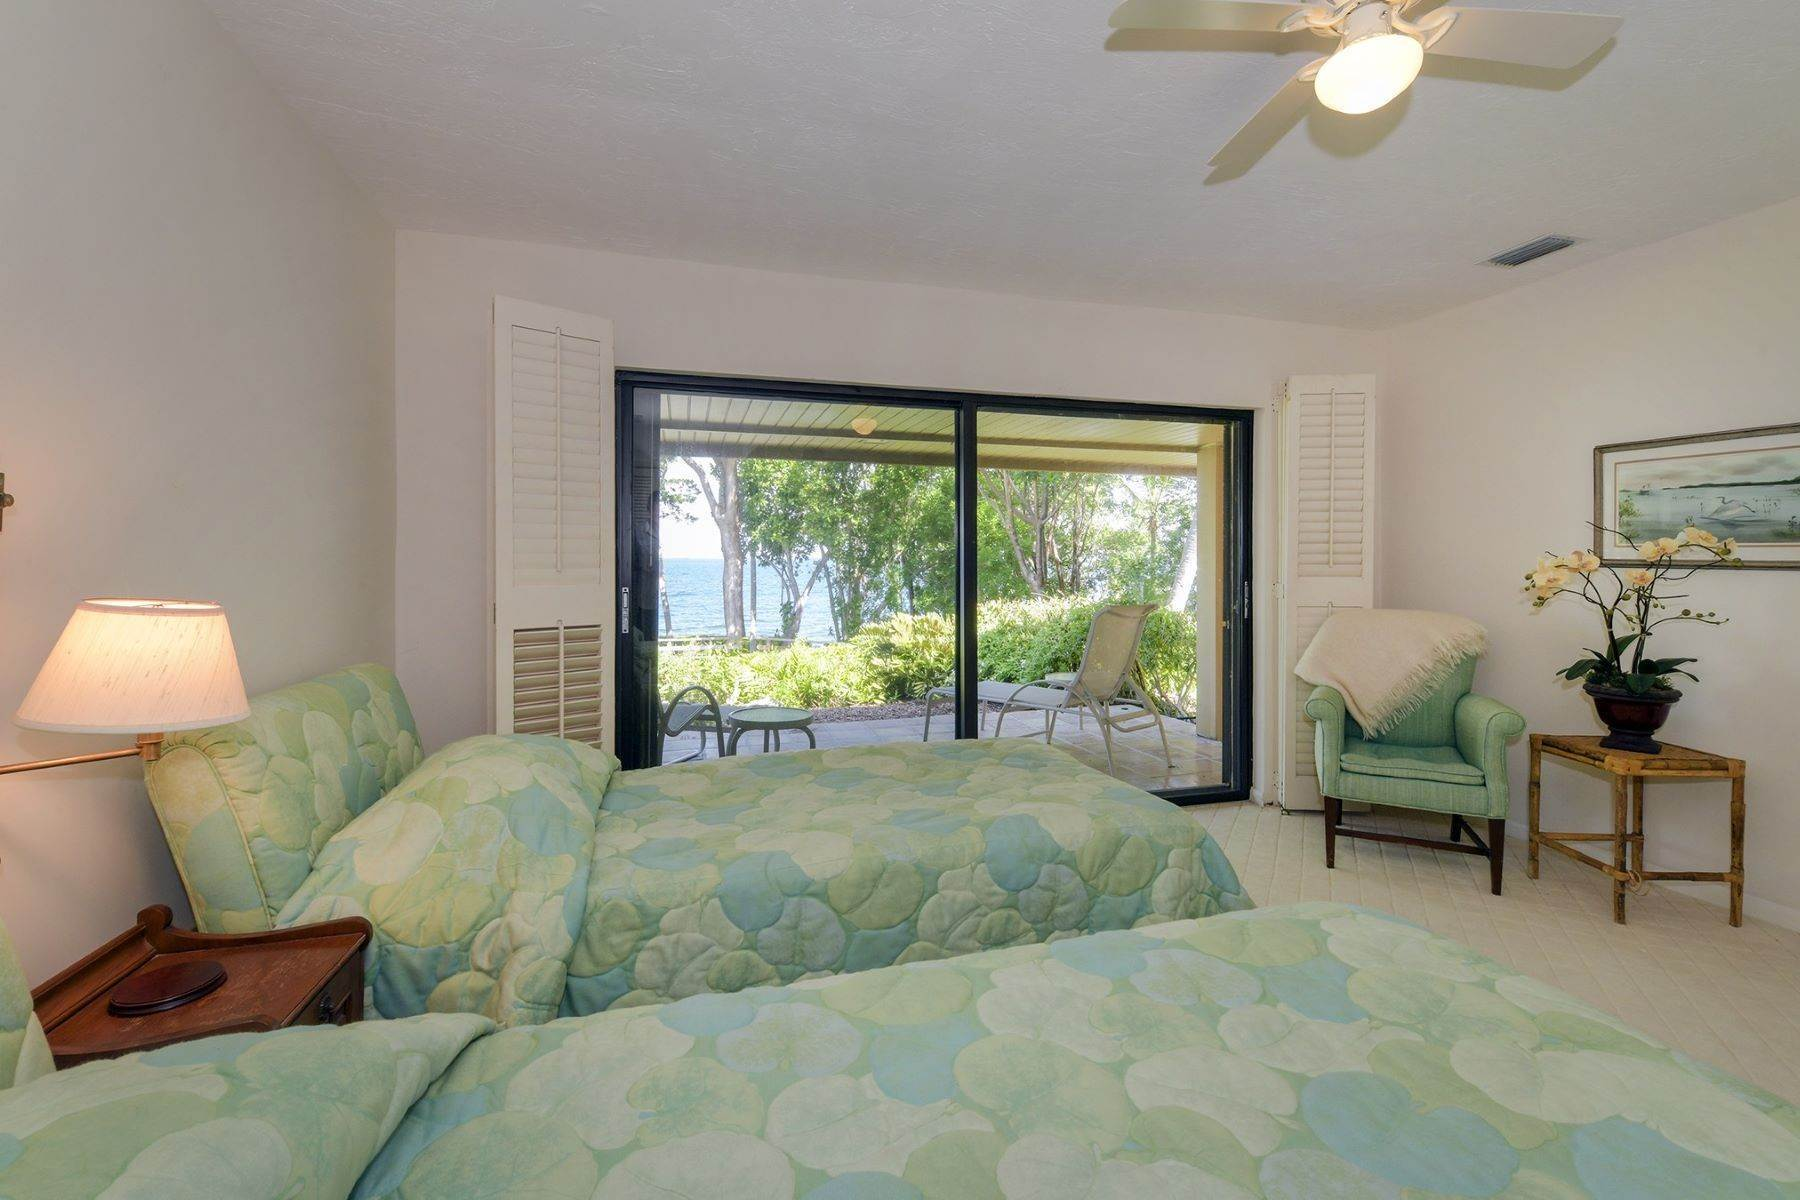 26. Property for Sale at 10 Cannon Point, Key Largo, FL 10 Cannon Point Key Largo, Florida 33037 United States